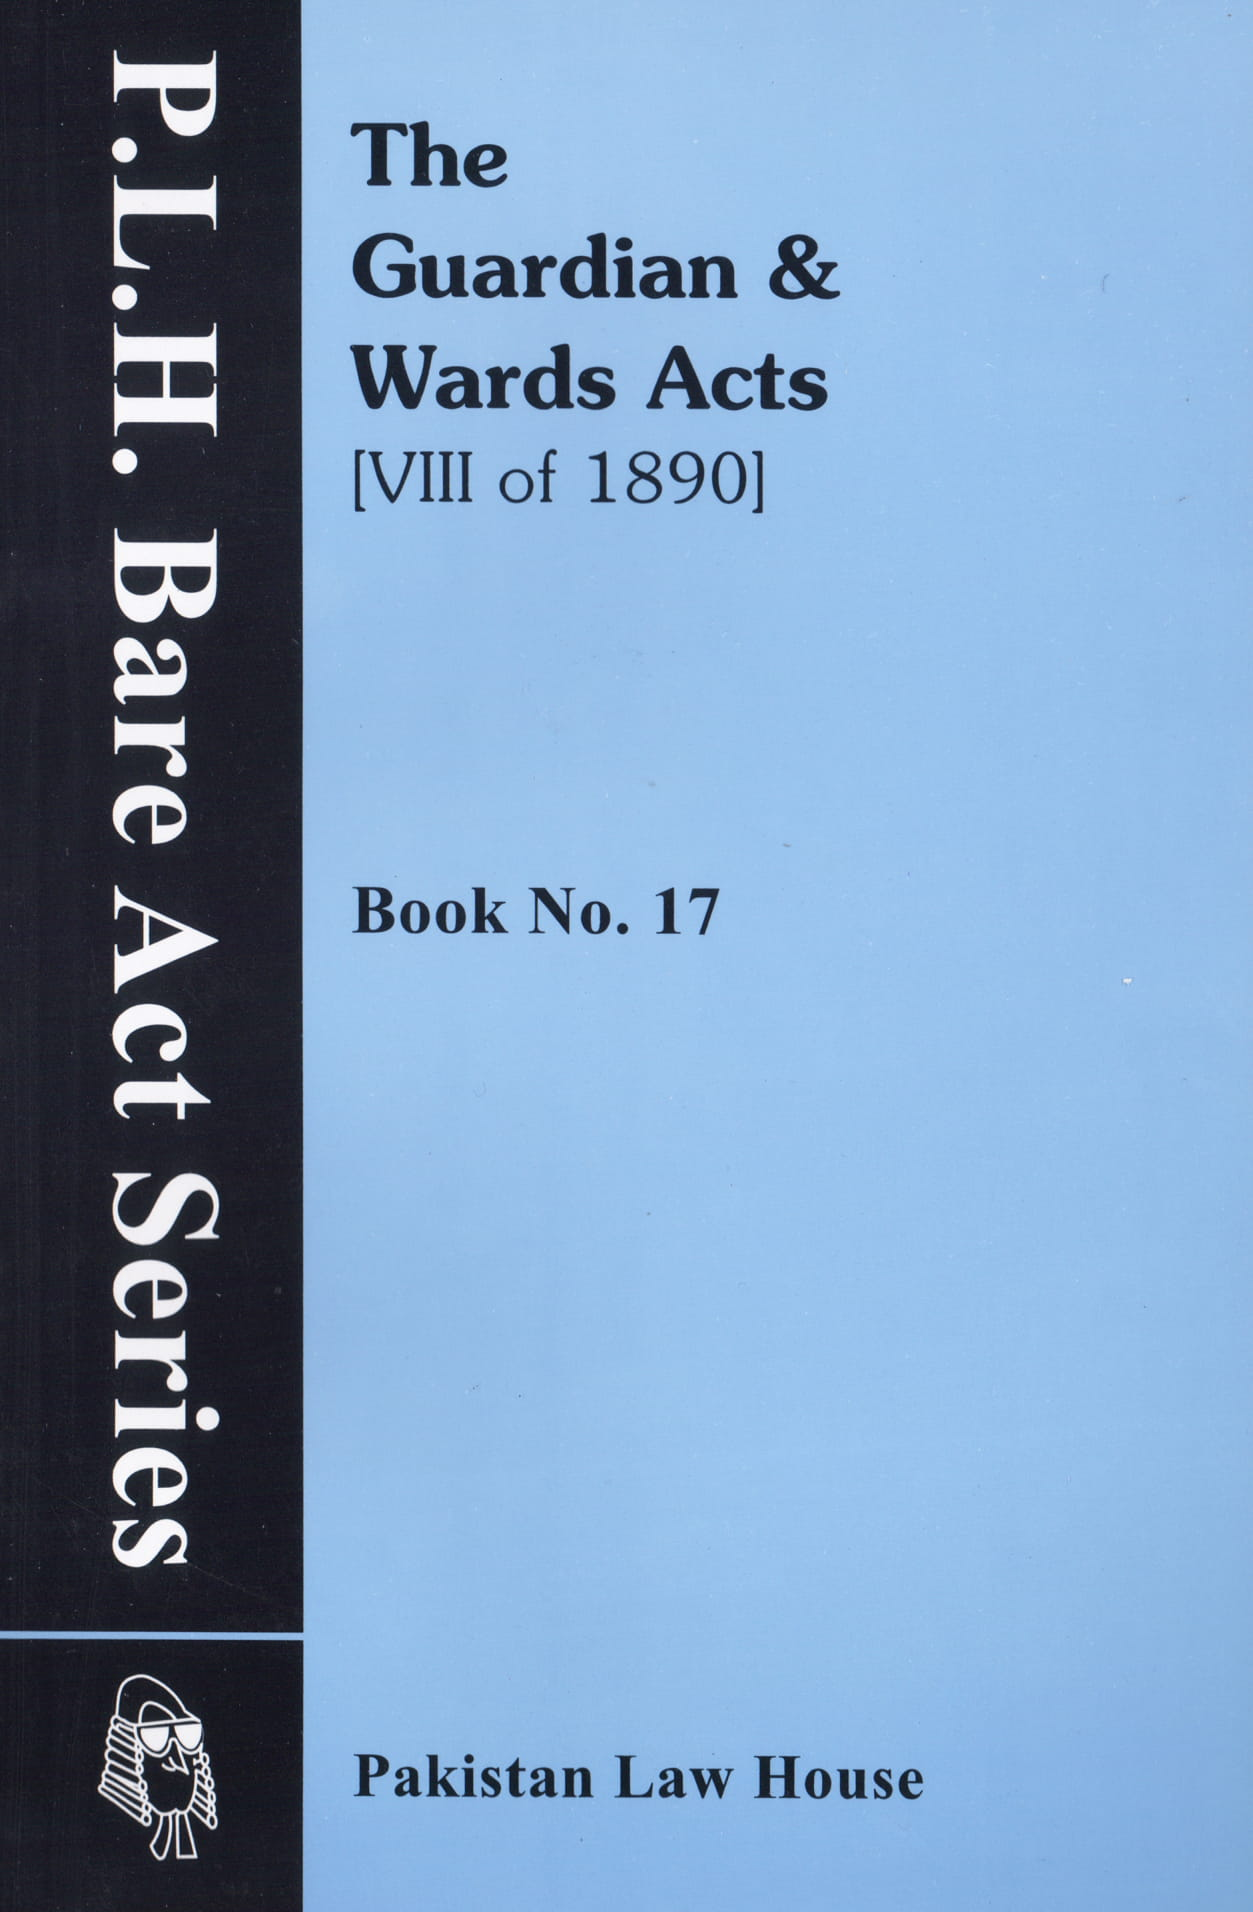 The Guardian And Wards Acts, 1890